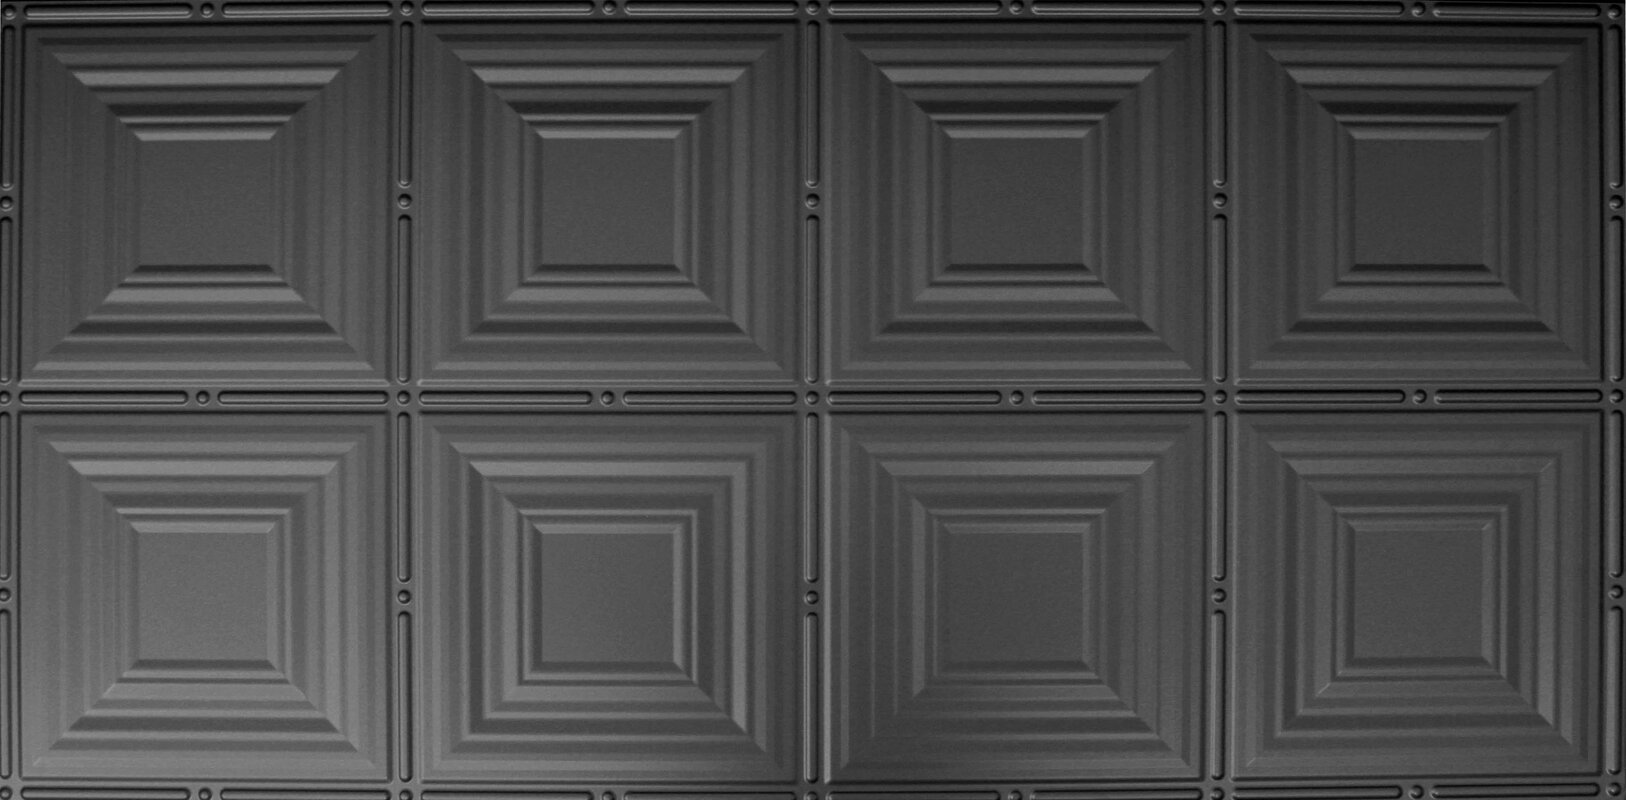 Excellent 12X24 Floor Tile Patterns Thick 16X32 Ceiling Tiles Rectangular 2 X 6 Subway Tile Backsplash 24X48 Ceiling Tiles Old 2X8 Subway Tile Bright3 Tile Patterns For Floors Global Specialty Products Glue Up Square 2\u0027 X 4\u0027 Tin Ceiling Tile ..